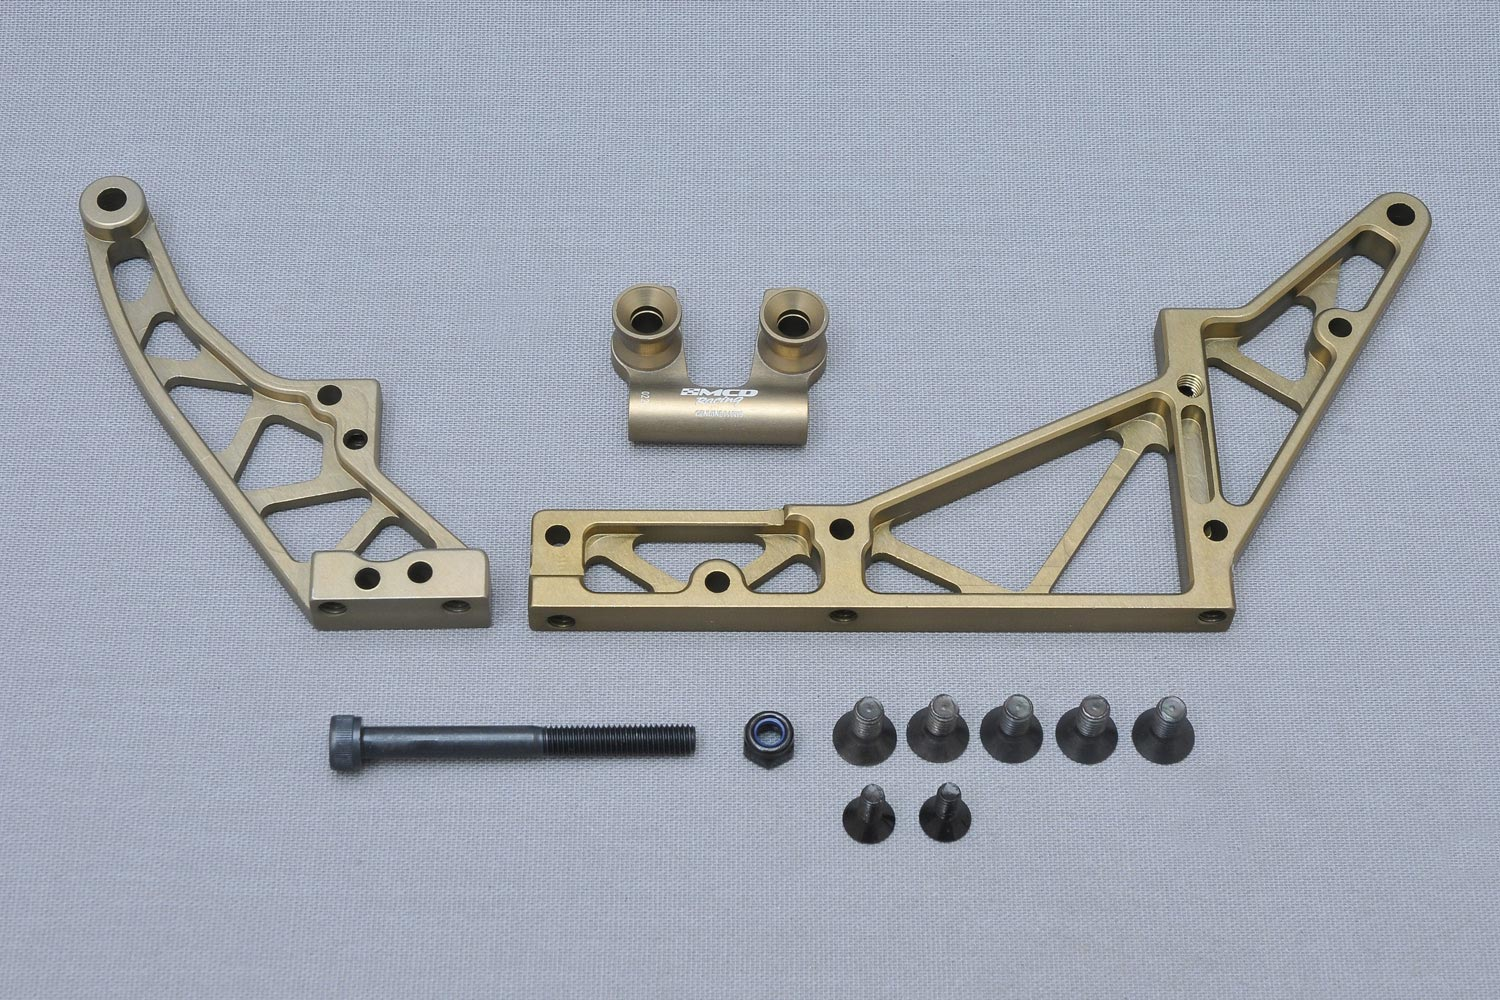 MCD Racing Alloy Rear Chassis Stiffener Set.